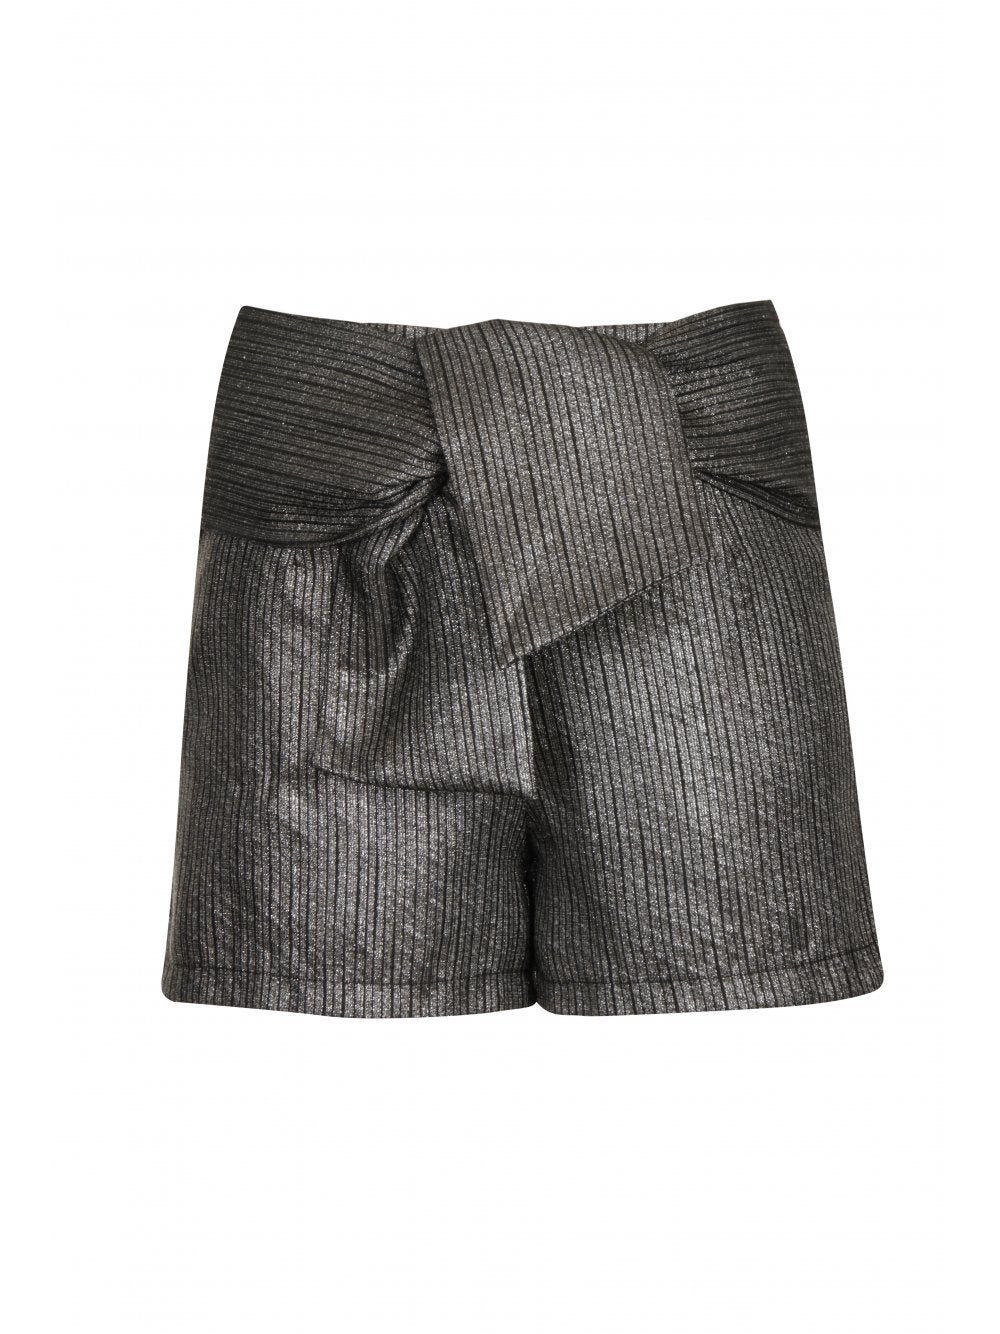 Silver Metallic & Black Stripe Print Tie Detail Shorts